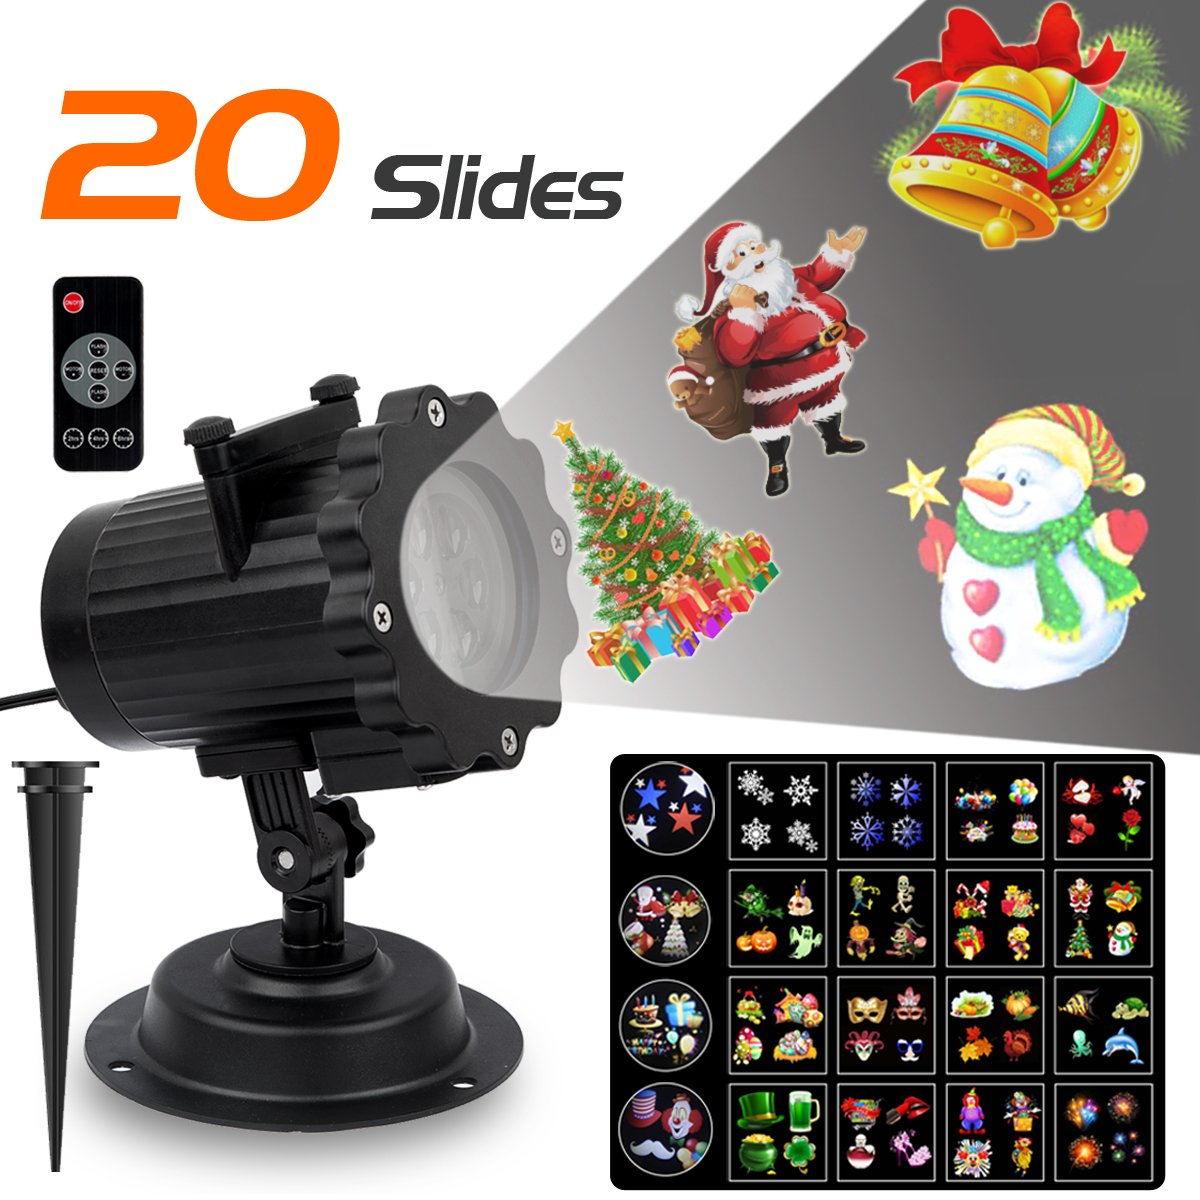 Amazon.com: Christmas Led Projector Lights with 20 Slides Pattern ...